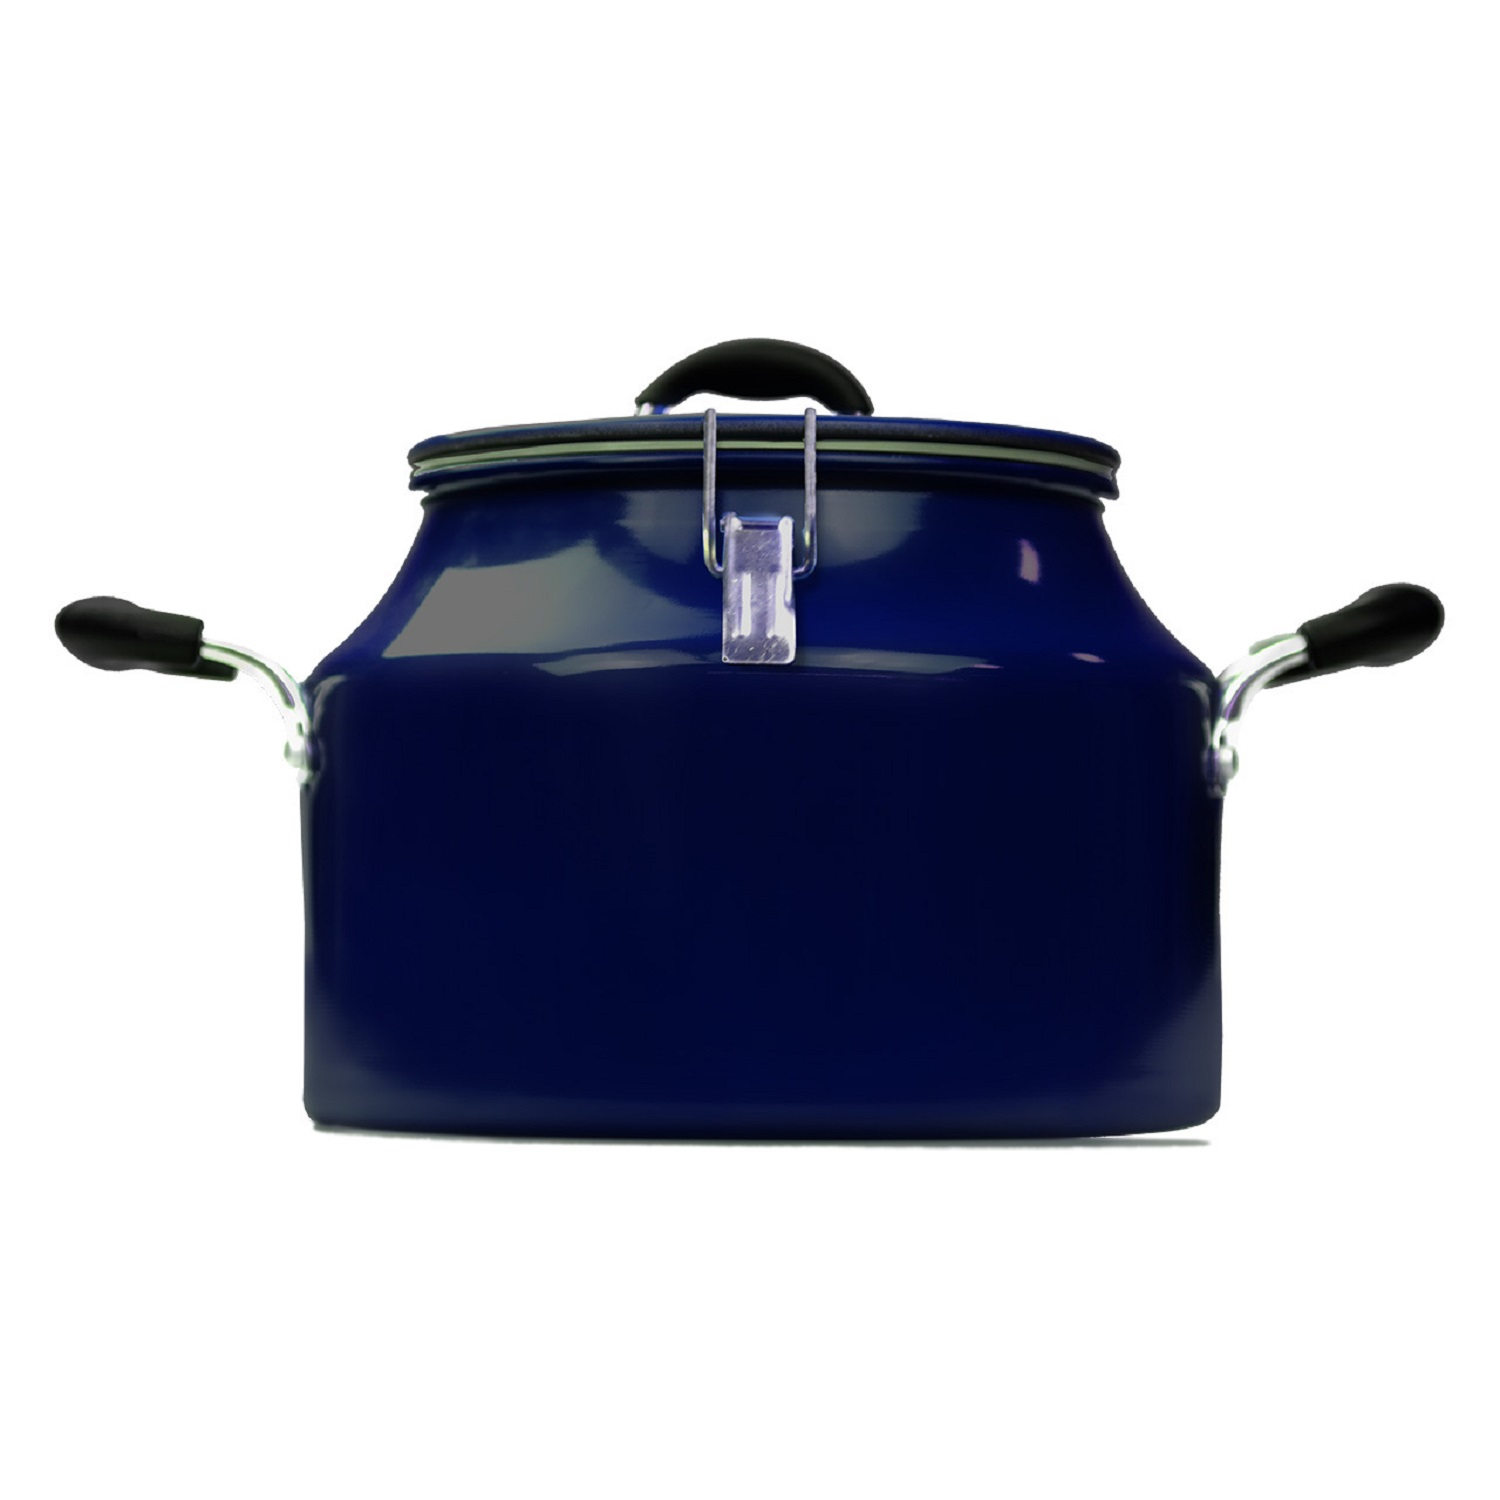 CanCooker Signature Series 2 Gallon Midnight Blue